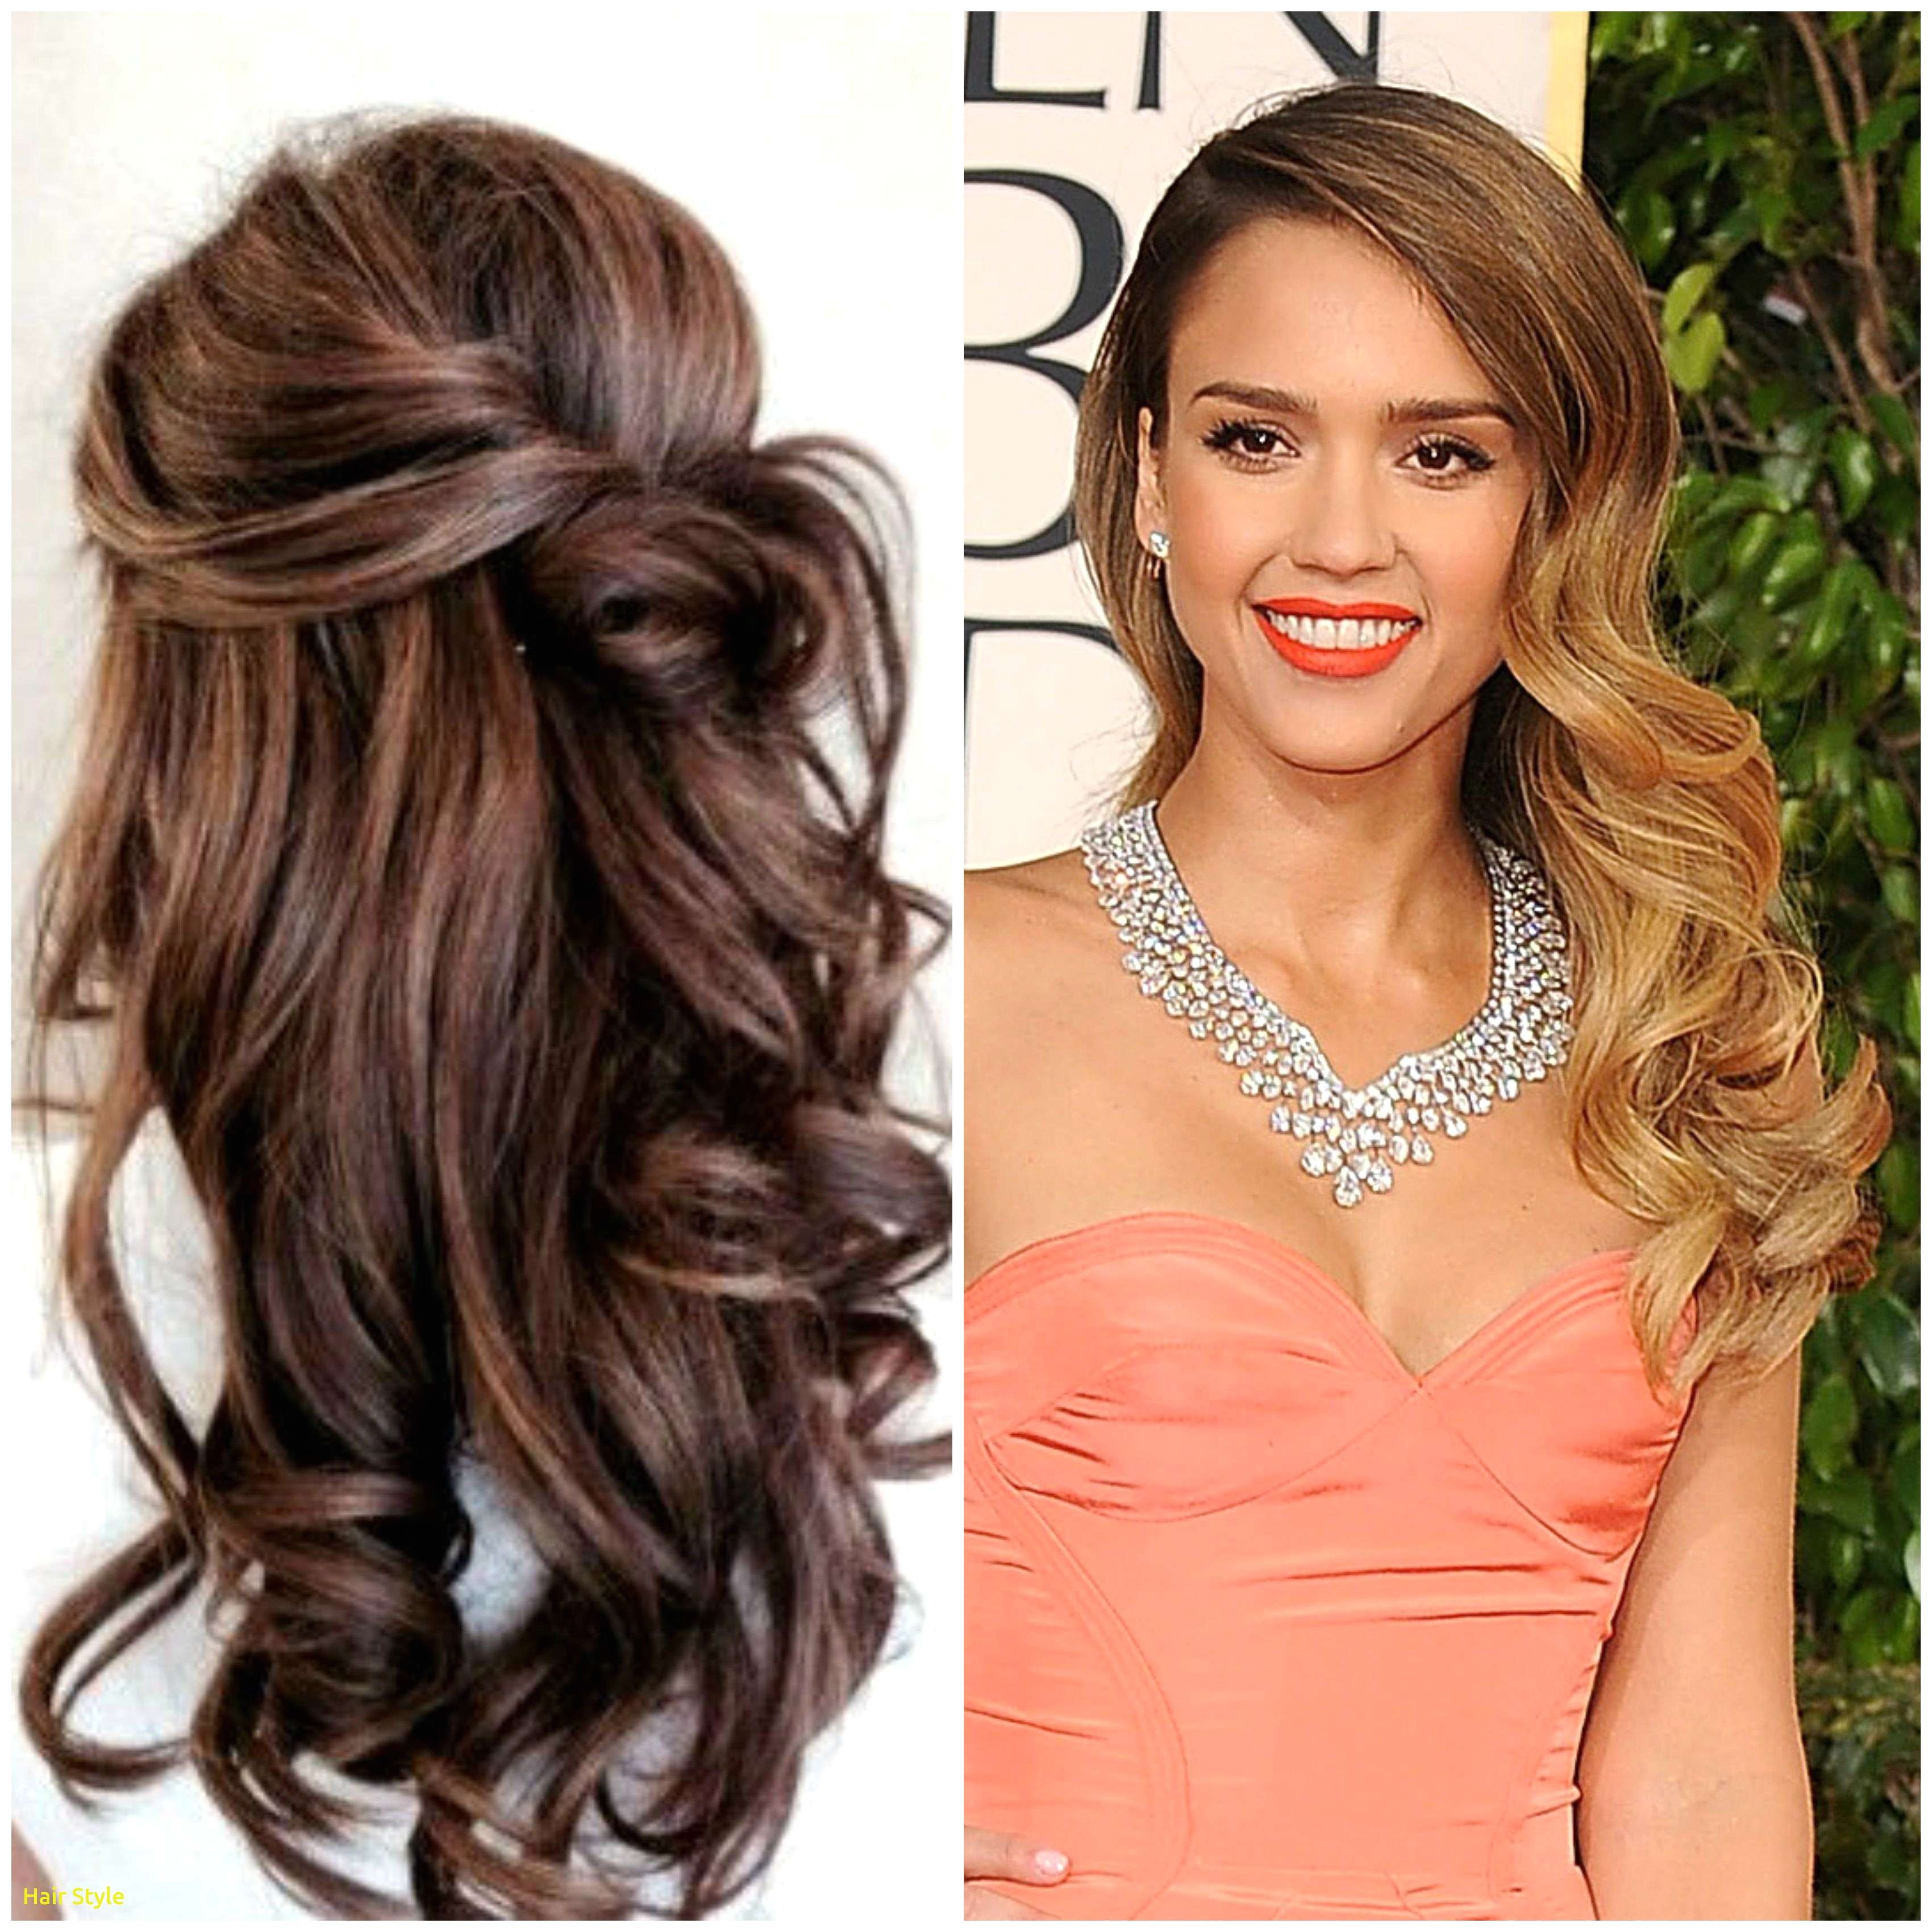 braided hairstyles for teenage girl awesome hairstyles for long hair 2015 luxury i pinimg 1200x 0d